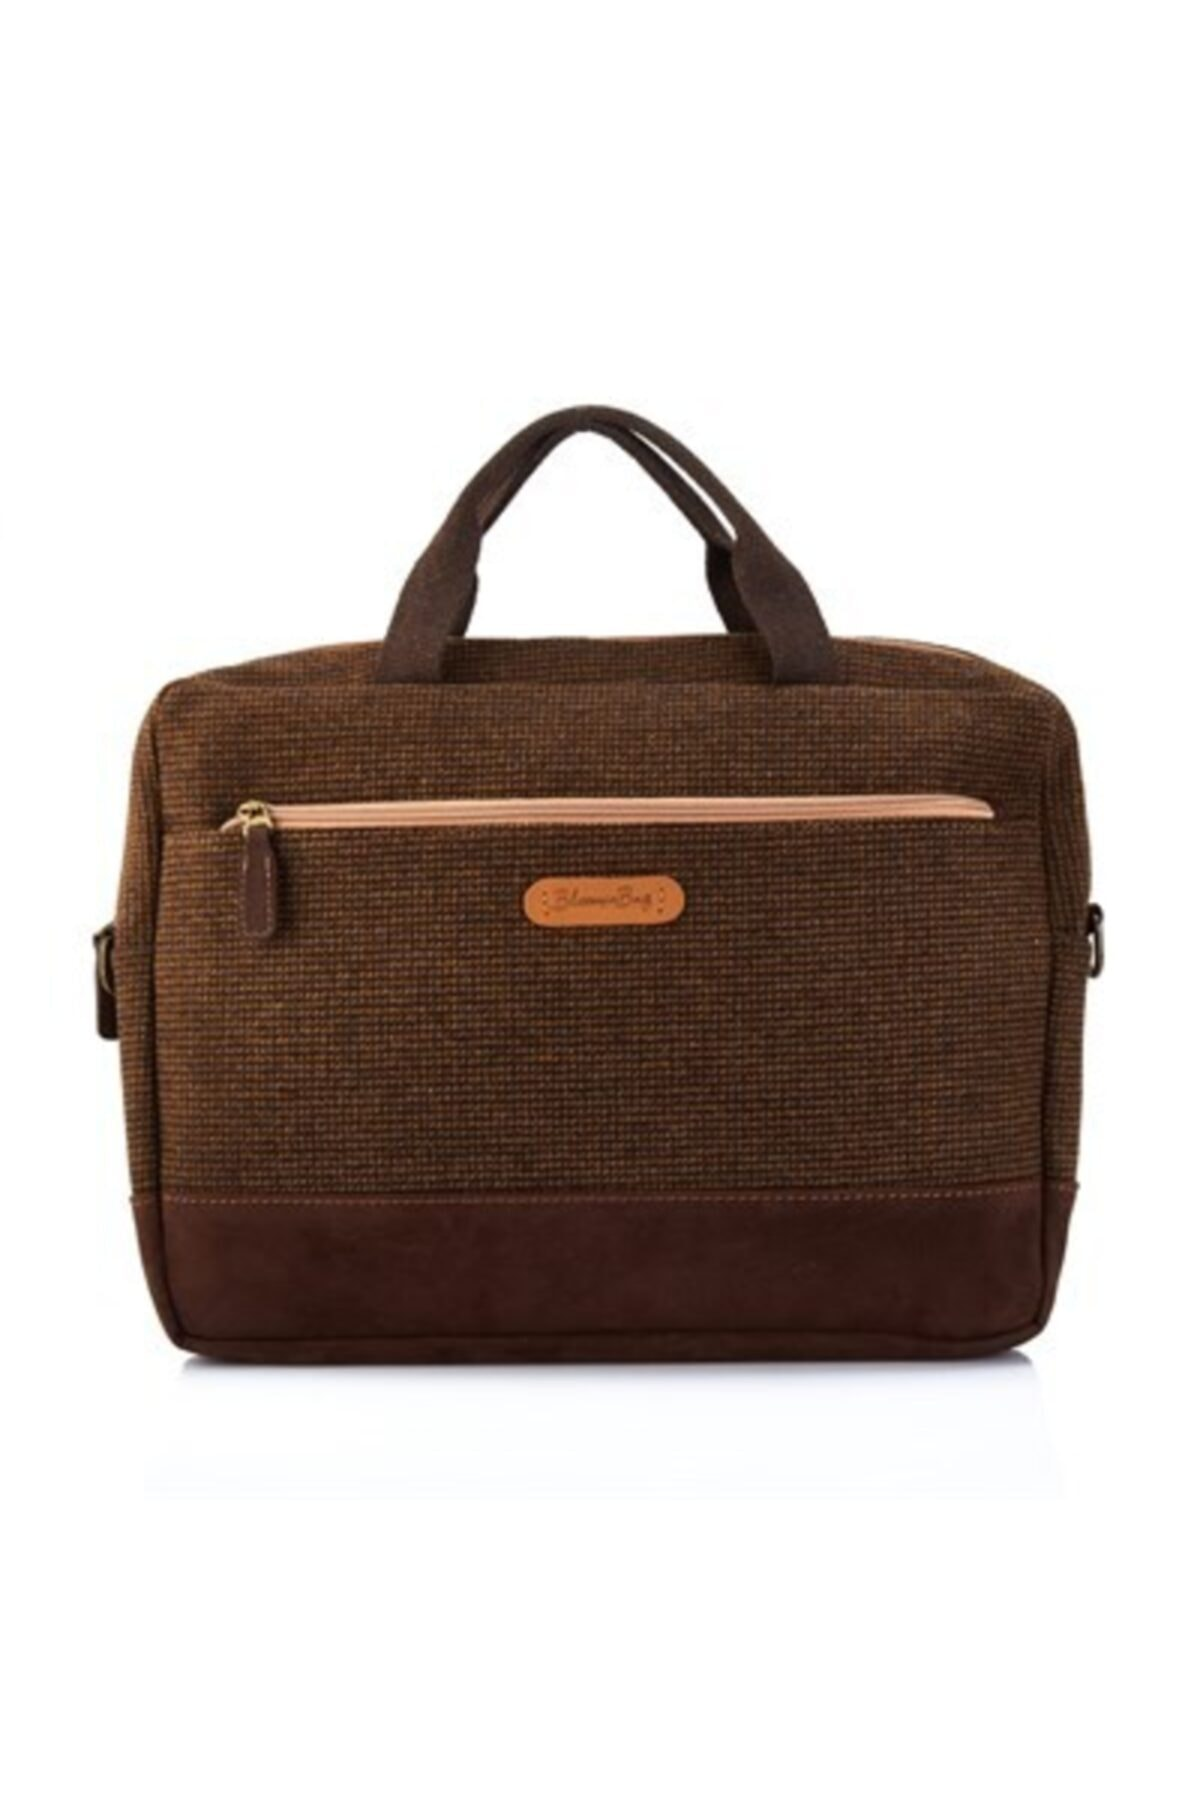 BloominBag Woody Wood 15.6 Inch Macbook Laptop Çantası 1